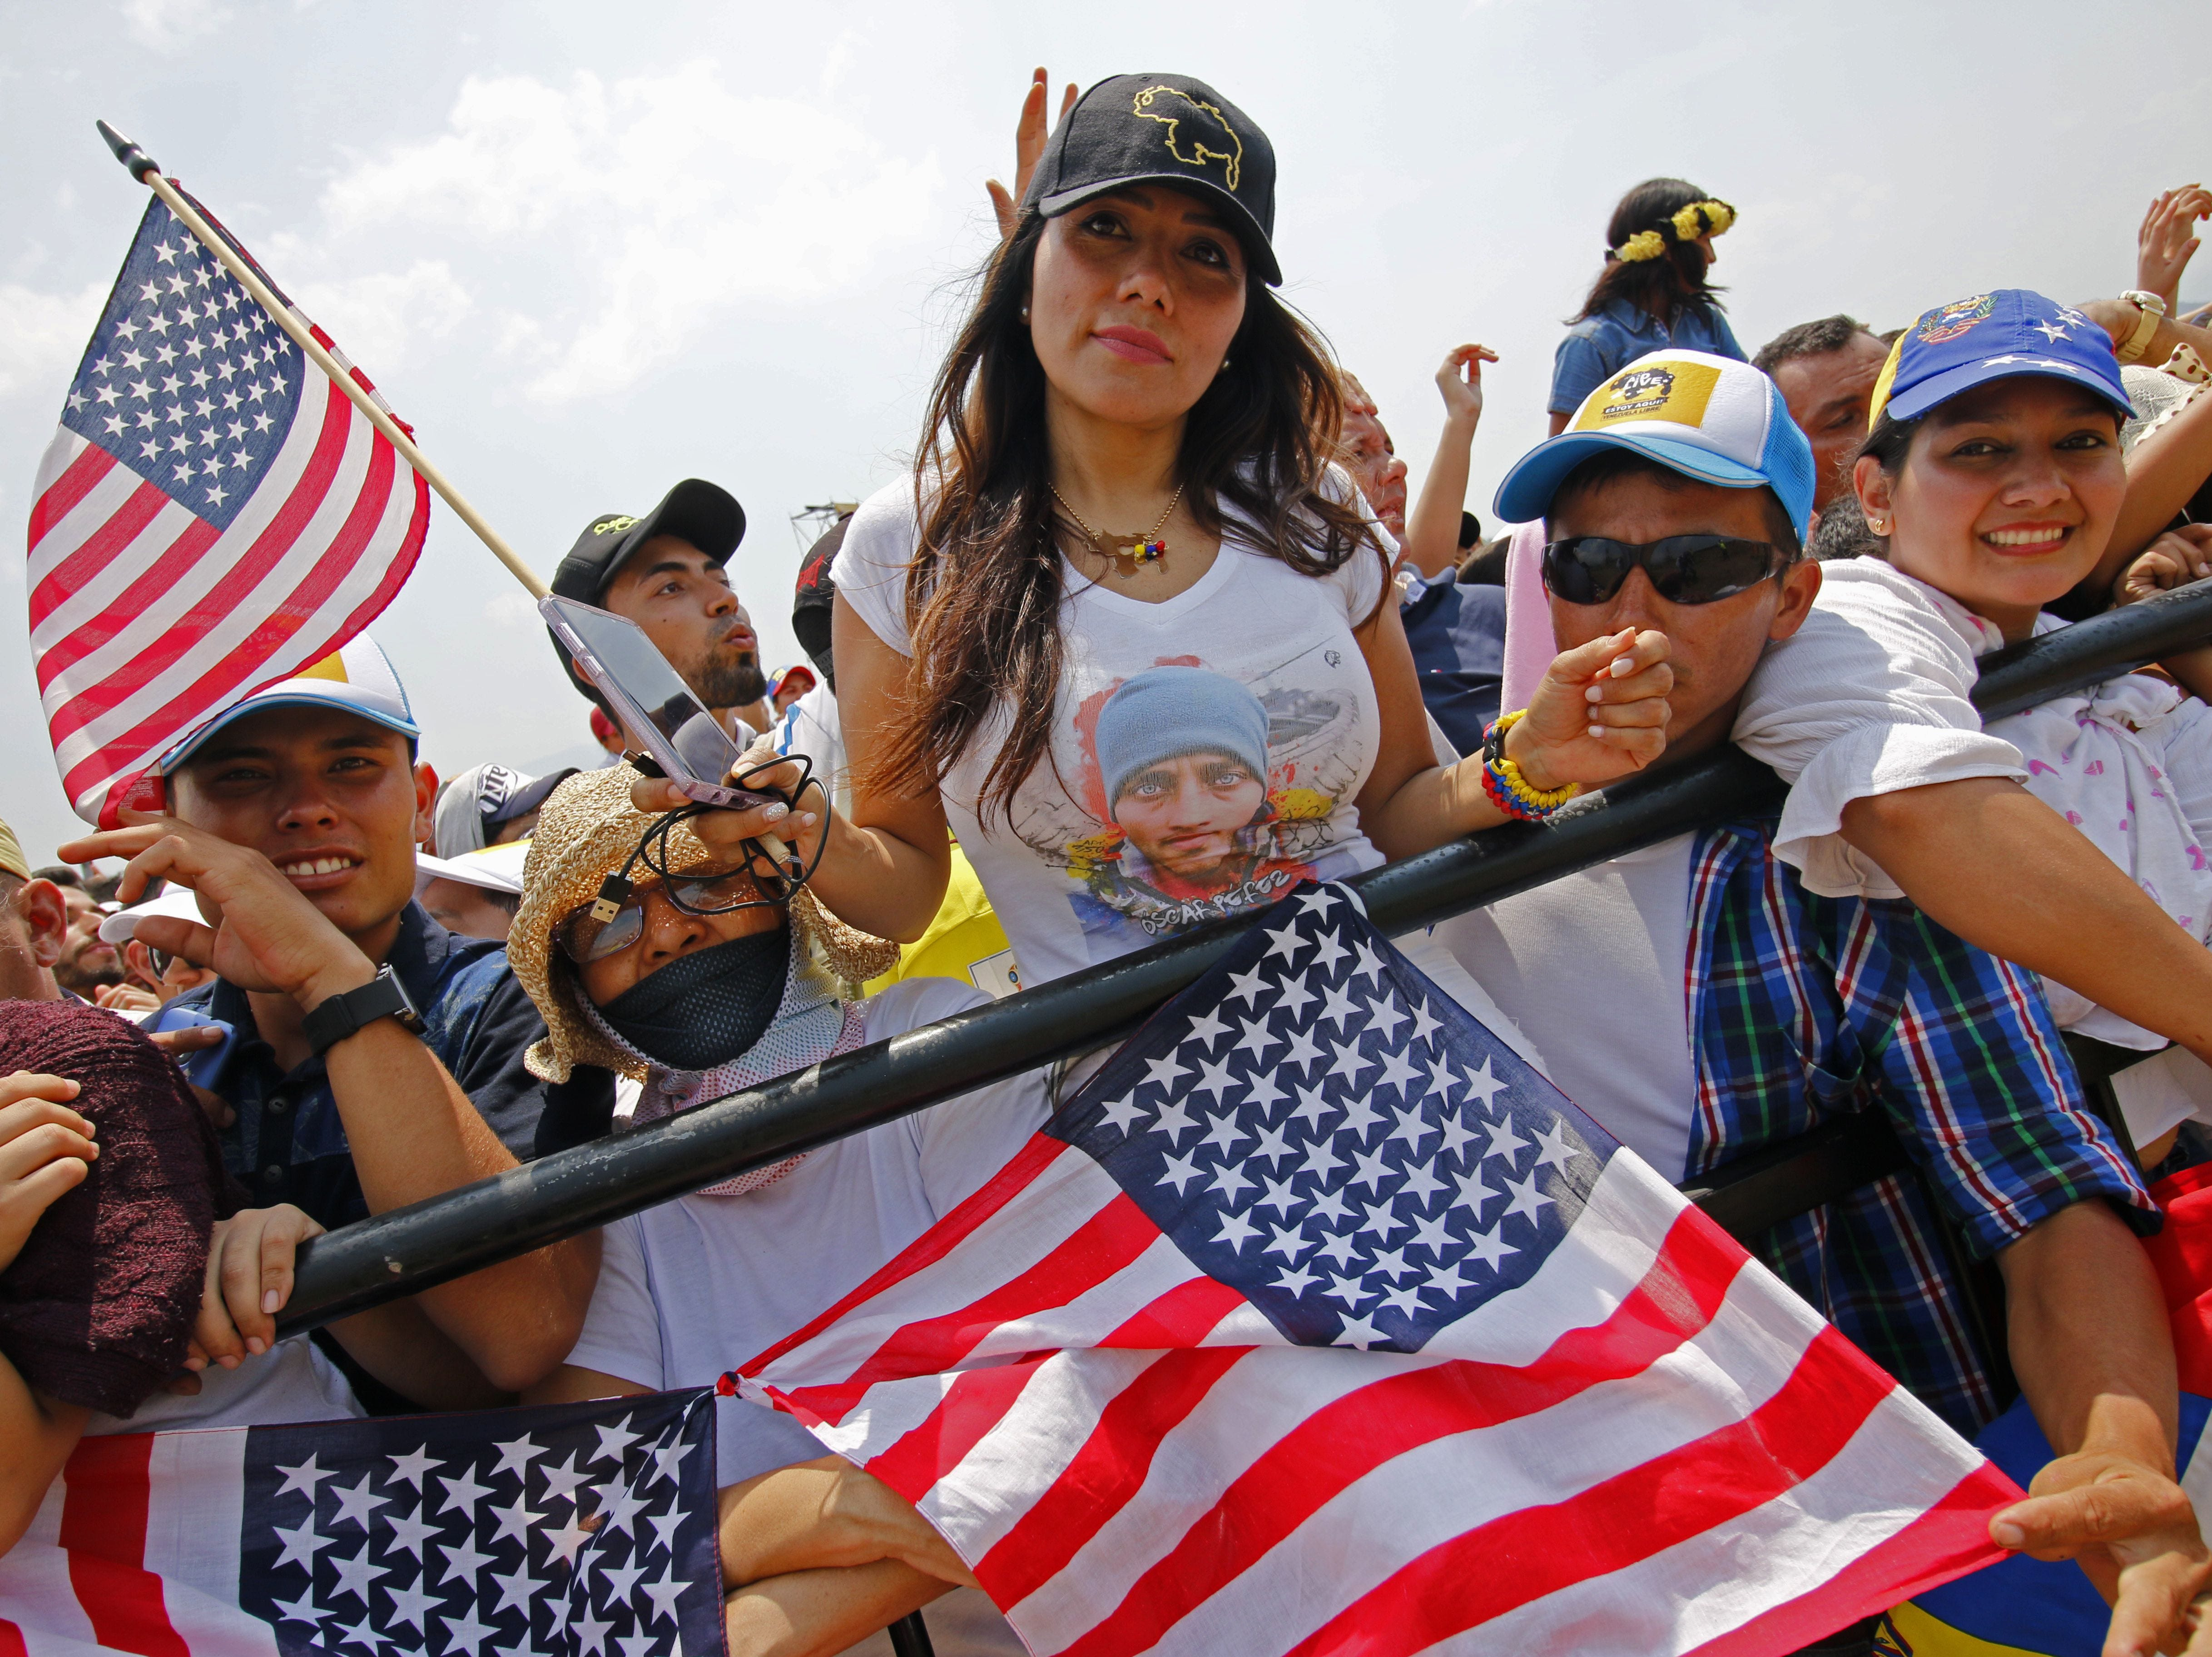 """A woman holds a U.S. flag while taking part in the """"Venezuela Aid Live"""" concert to assist the relief effort at Tienditas International Bridge in Cucuta, Colombia, on Feb. 22, 2019. The concert was organized by British billionaire Richard Branson. Venezuela's political tug-of-war morphed into a battle of the bands on Friday, with dueling government and opposition pop concerts ahead of a weekend showdown over the entry of badly needed food and medical aid."""